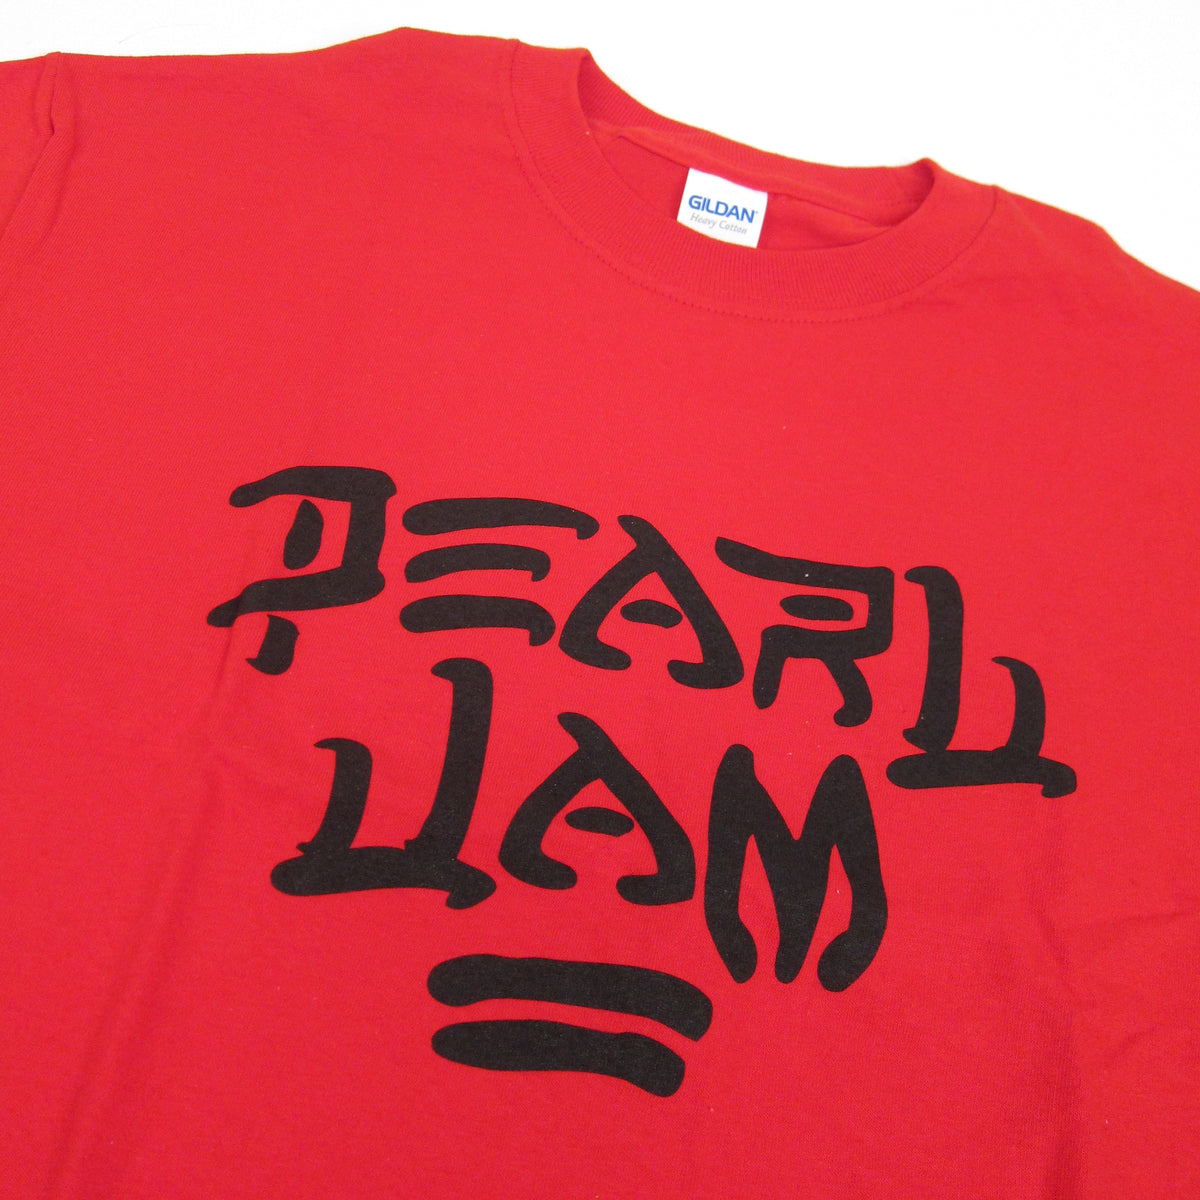 Pearl Jam: Destroy Shirt - Red